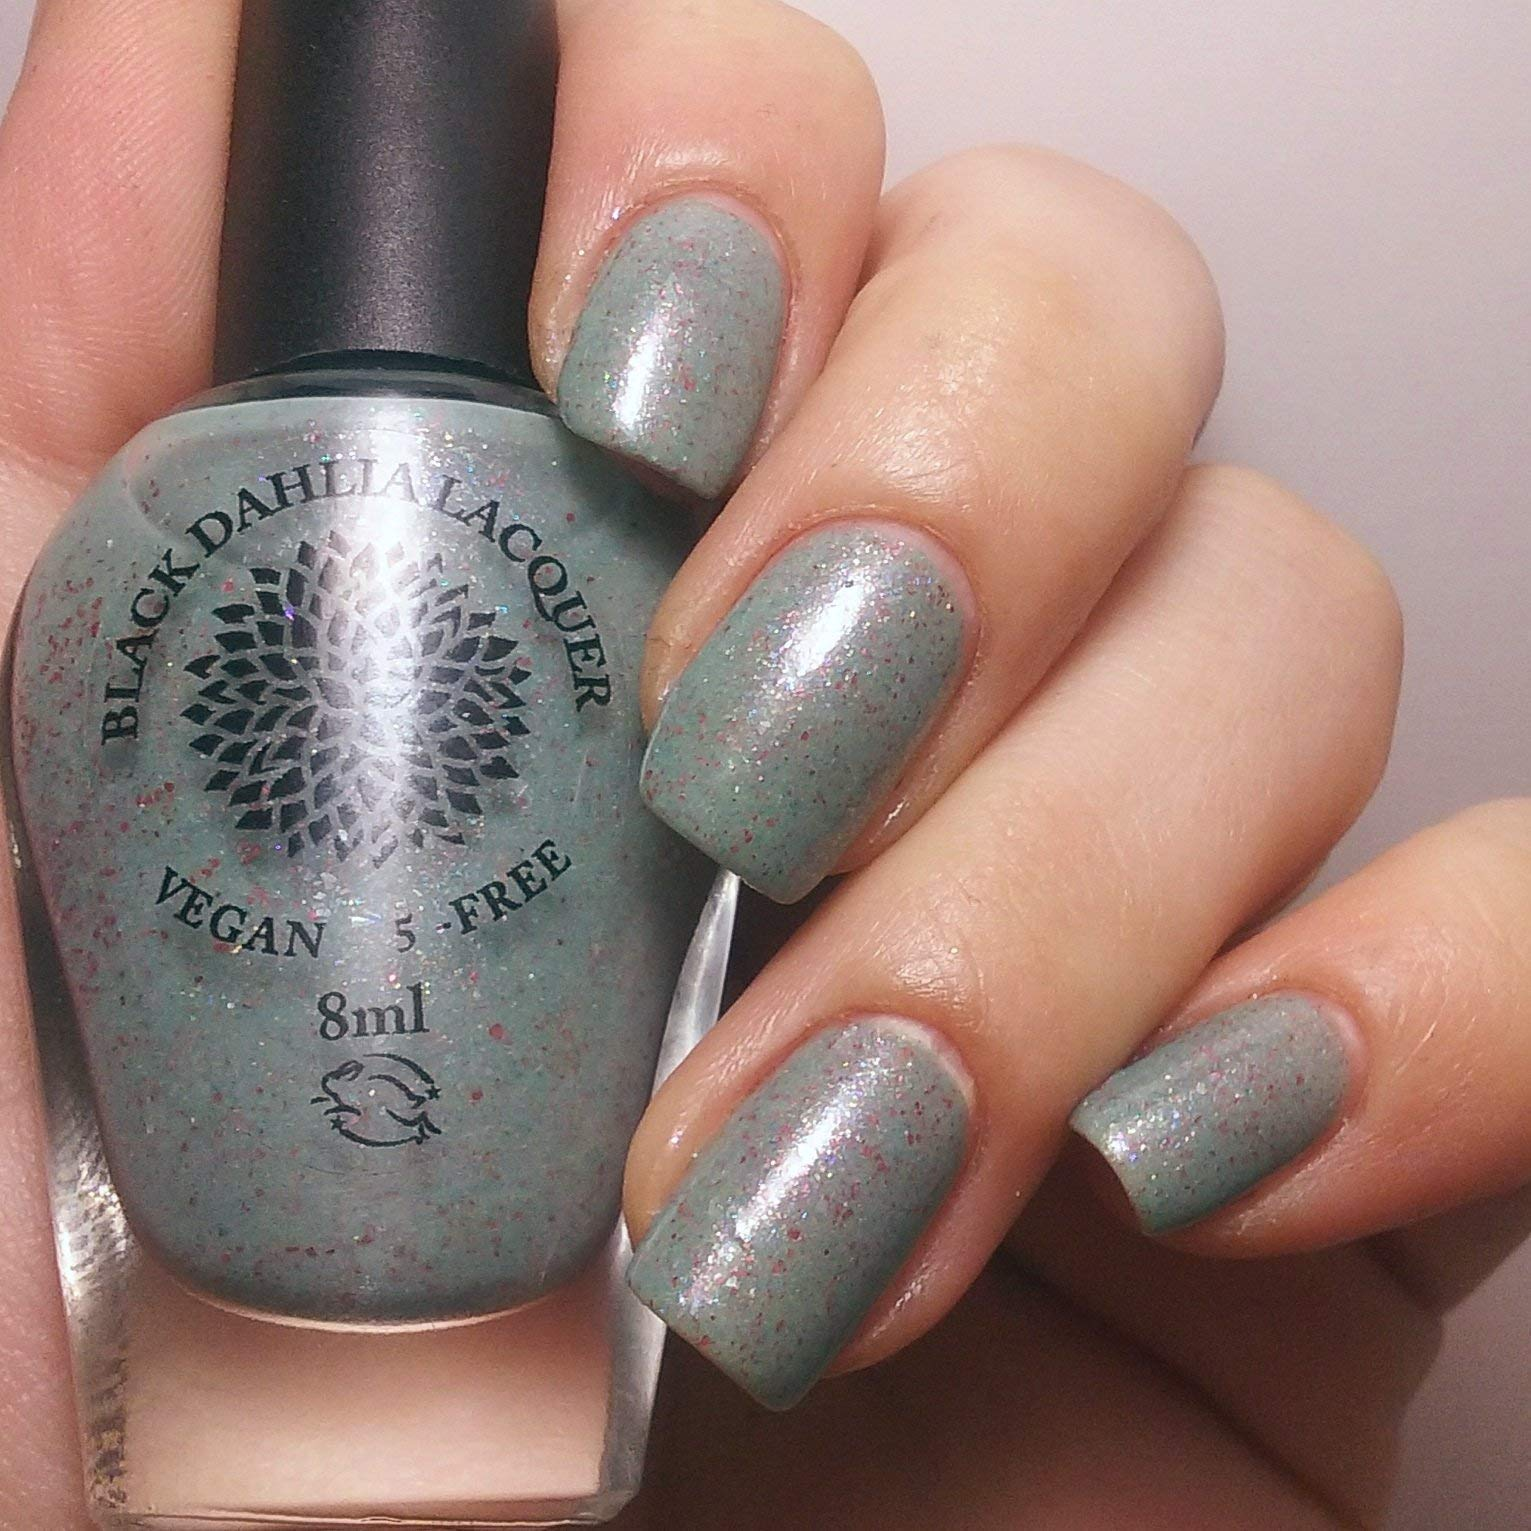 Rose Bud | Green Gray Crelly Nail Polish with Rainbow Flakies | by Black Dahlia Lacquer by Black Dahlia Lacquer LLC